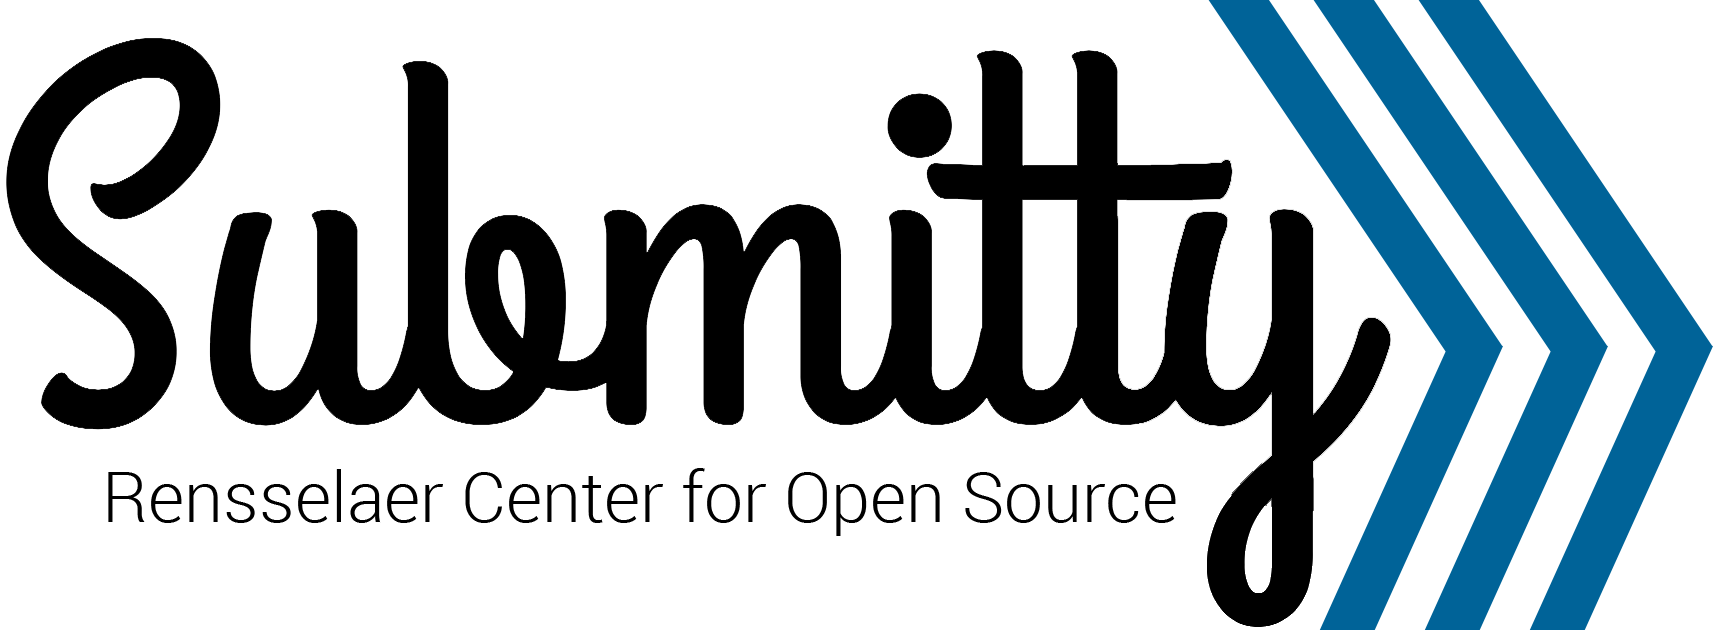 Submitty logo